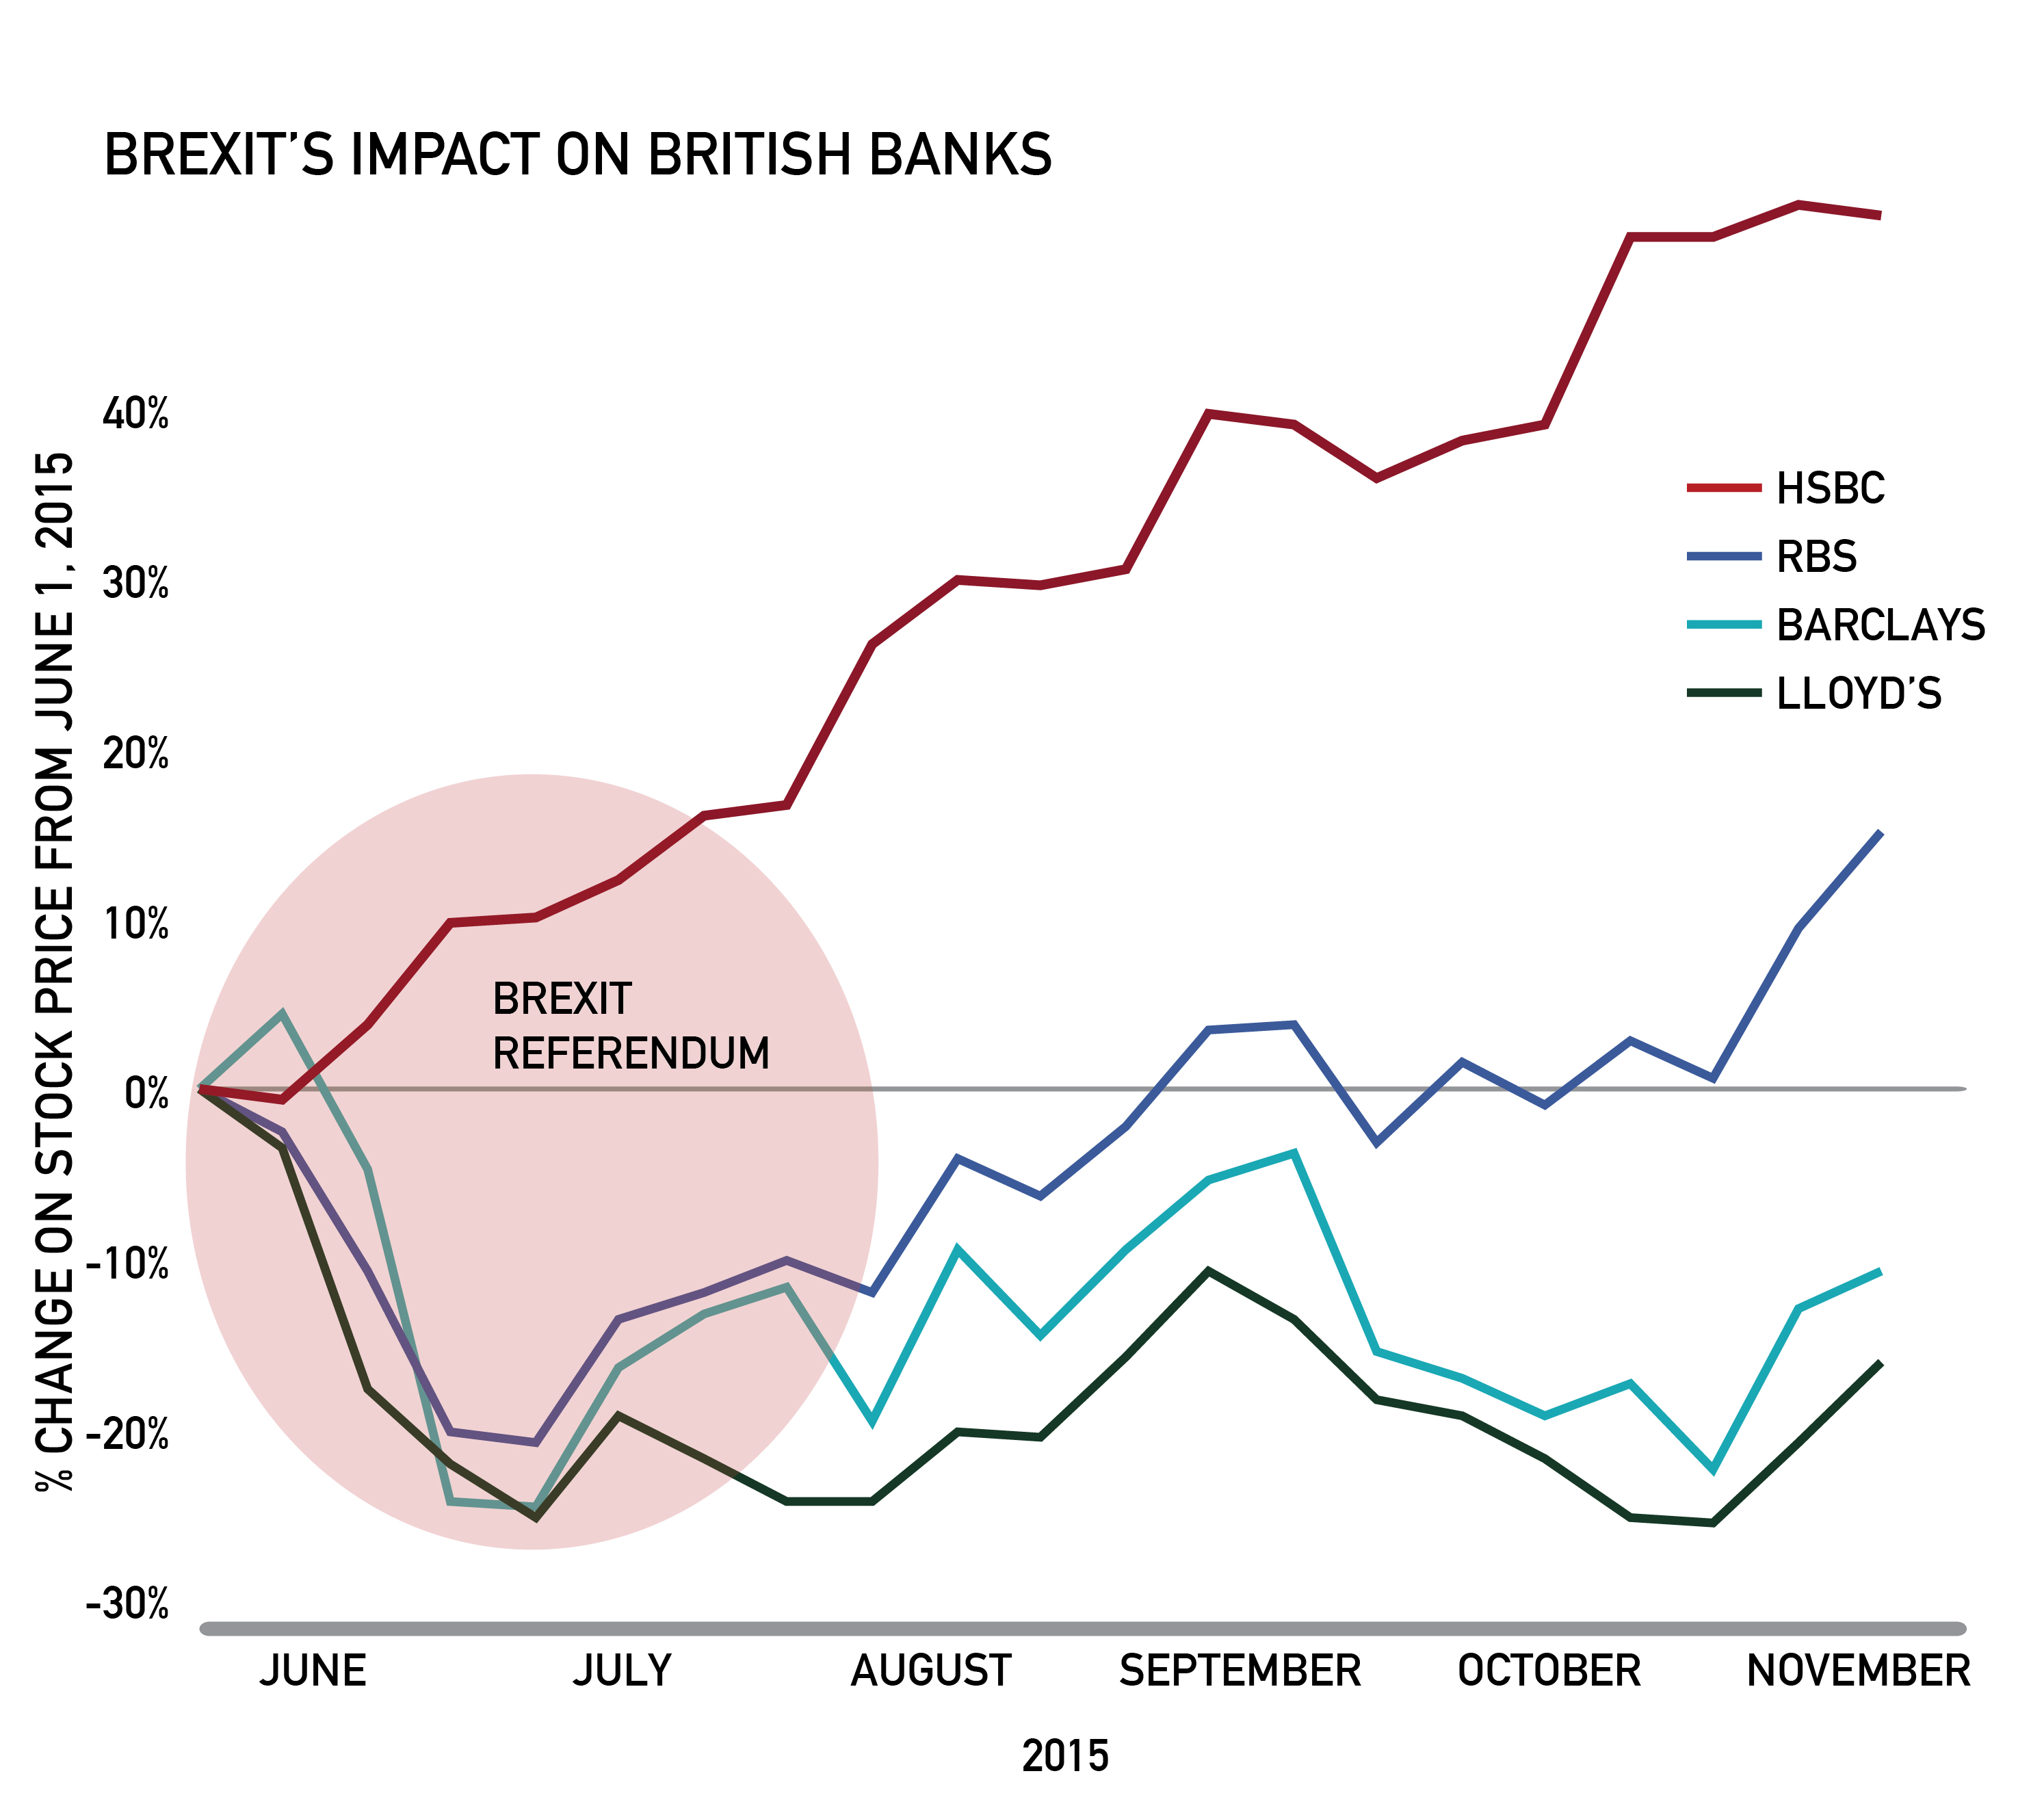 HSBC: Banking on Brexit - Ivey Business Review